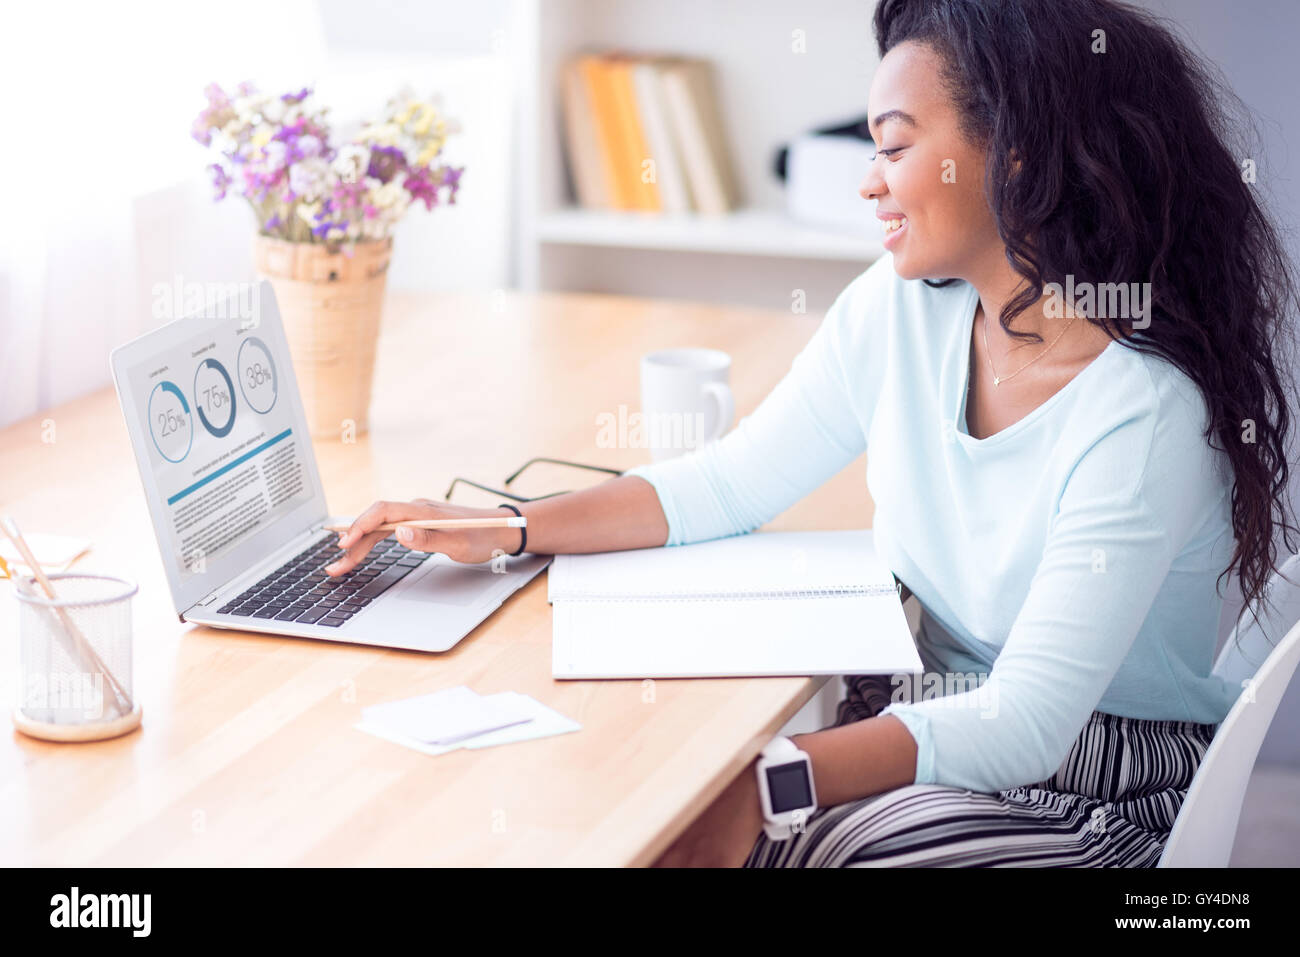 Positive woman using laptop - Stock Image